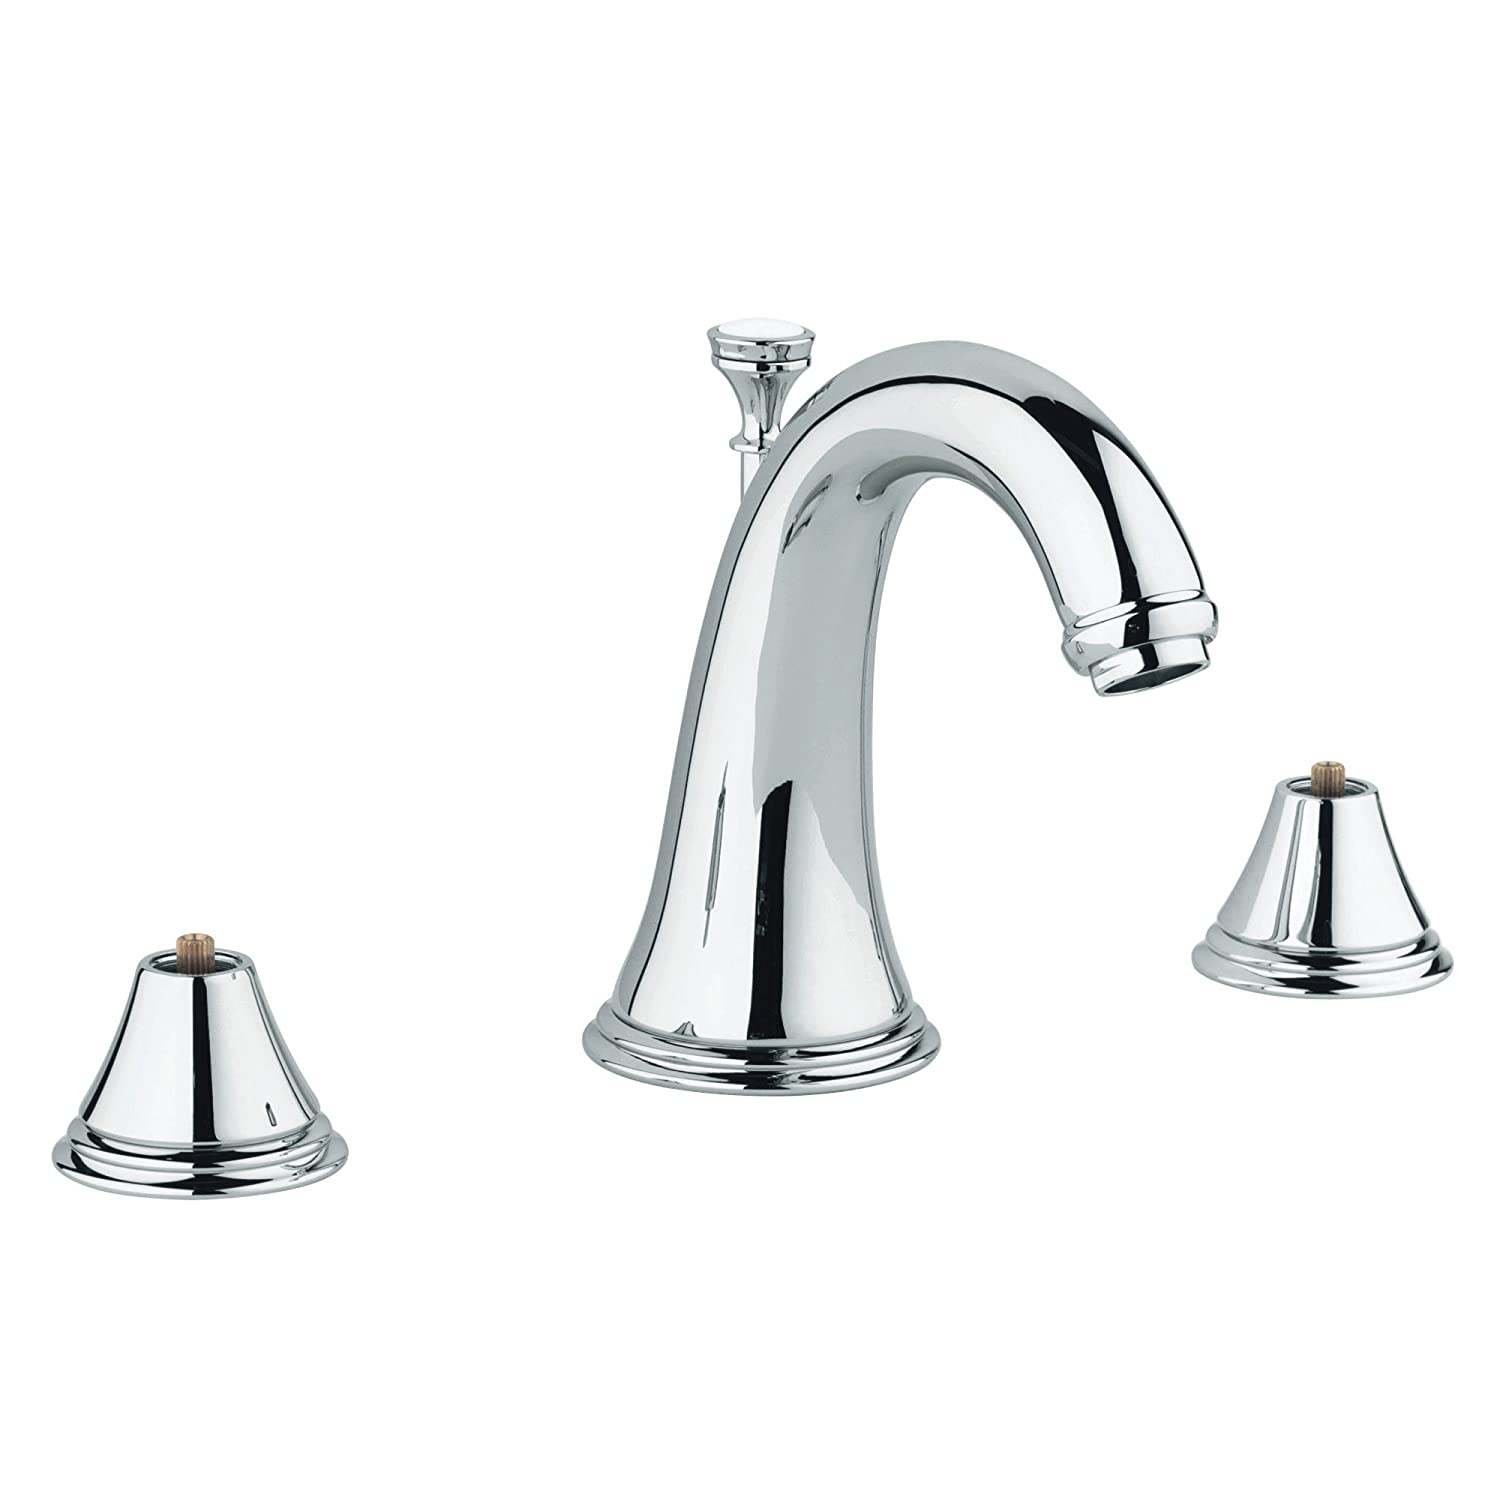 Grohe 20801000 Geneva 2-handle Bathroom Faucet - 1.5 GPM - Touch On ...